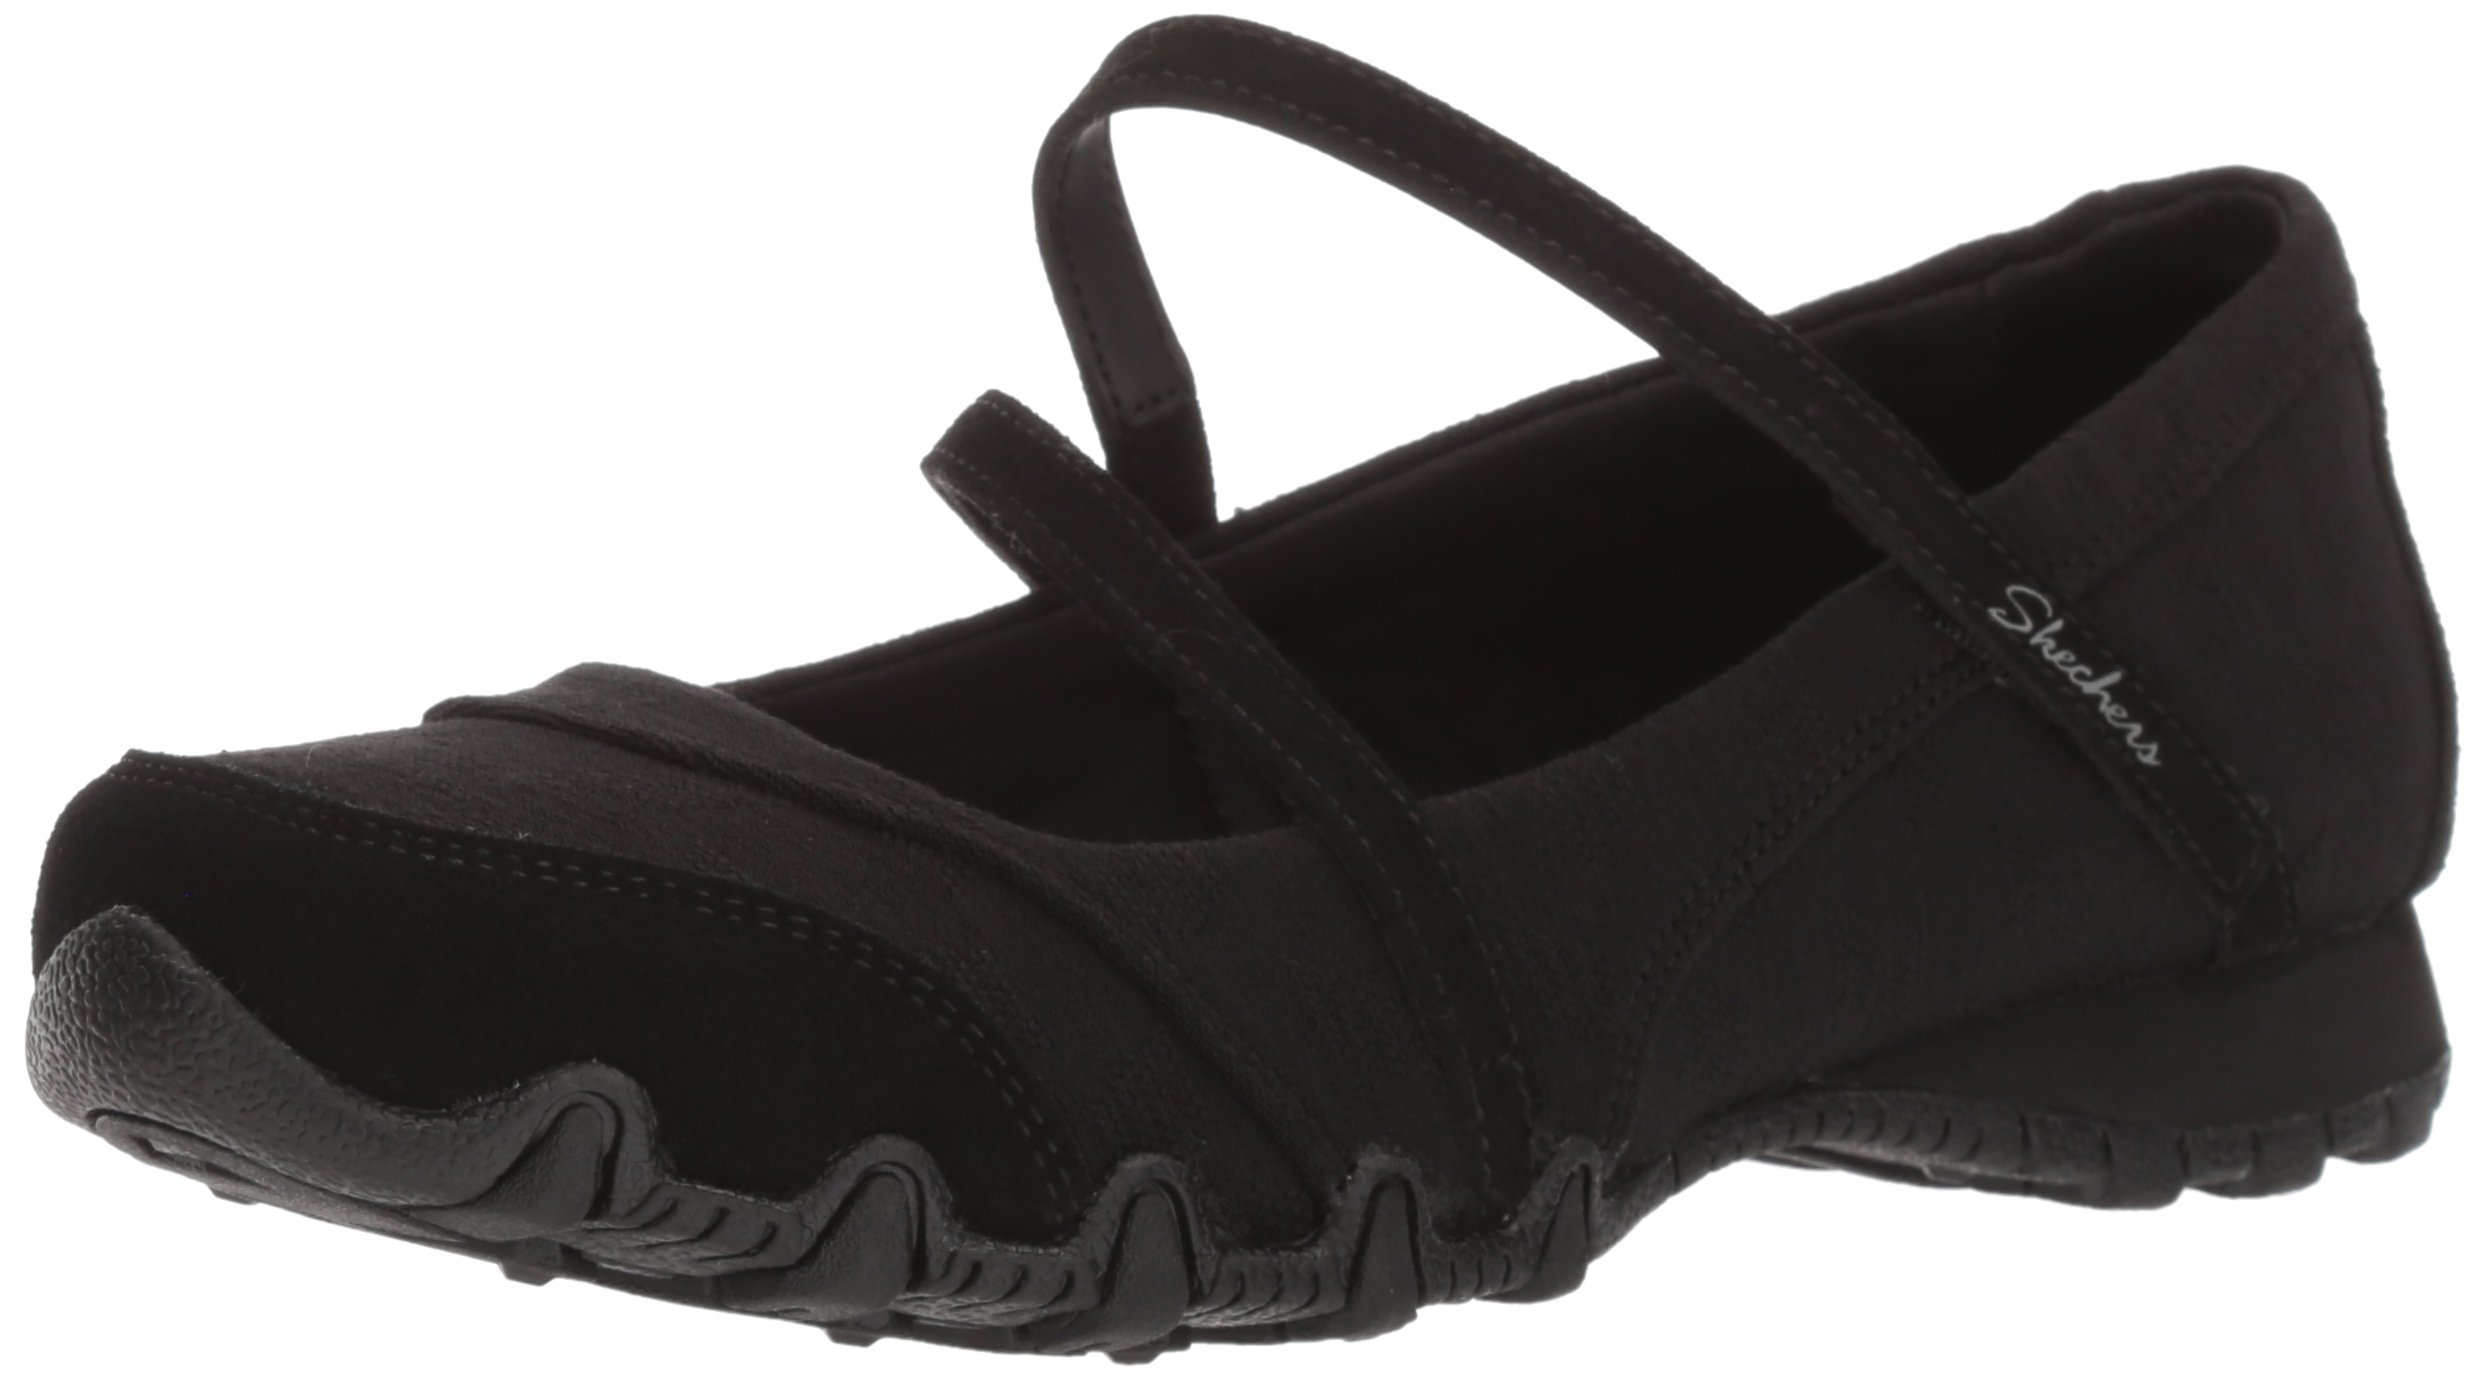 Skechers Women's Bikers -Fiesta Mary Jane Flat,7 M US,Black by Skechers (Image #1)